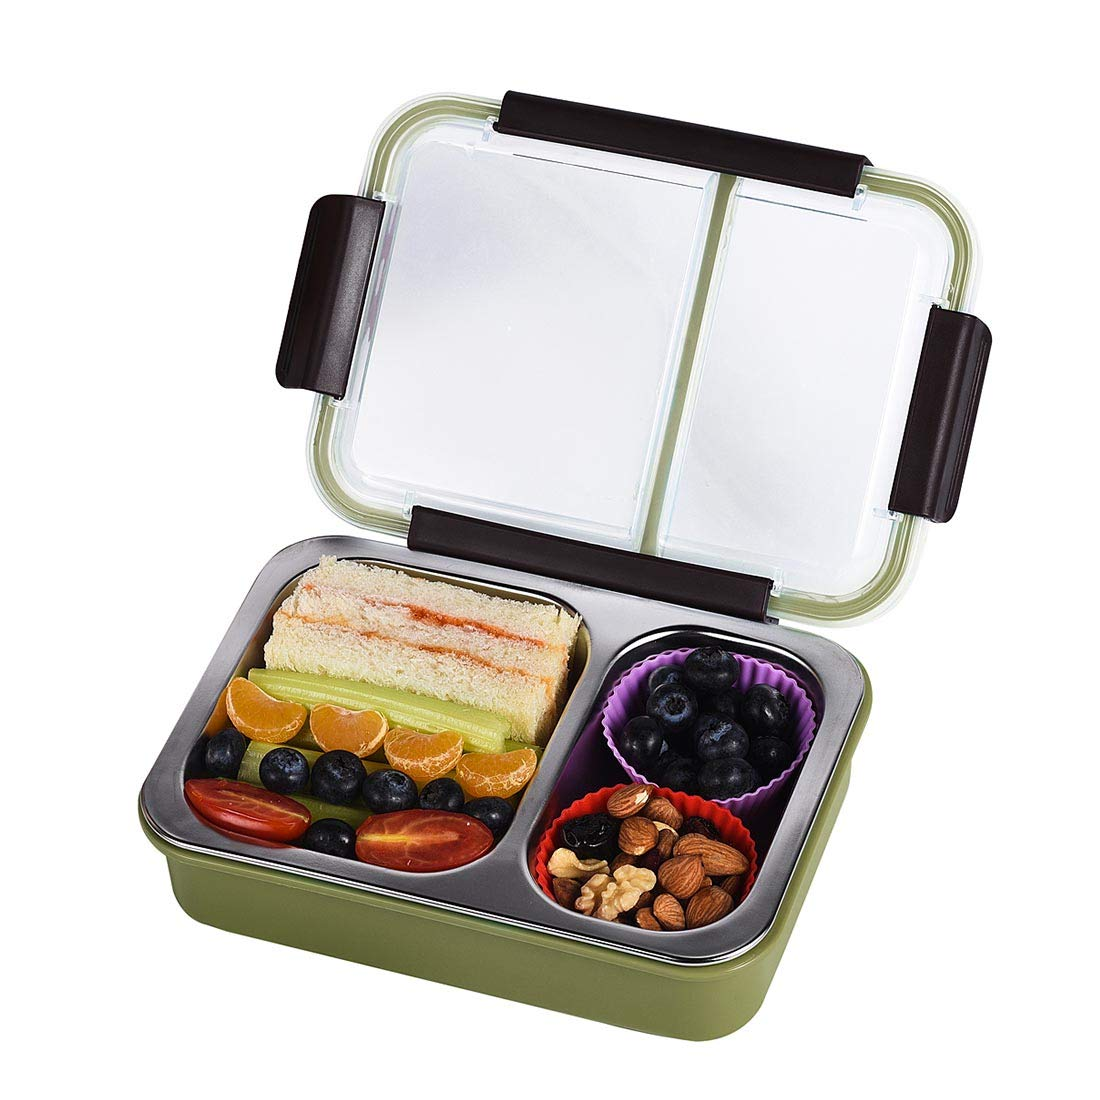 Top 9 Best Bento Box for Toddlers Reviews in 2019 9